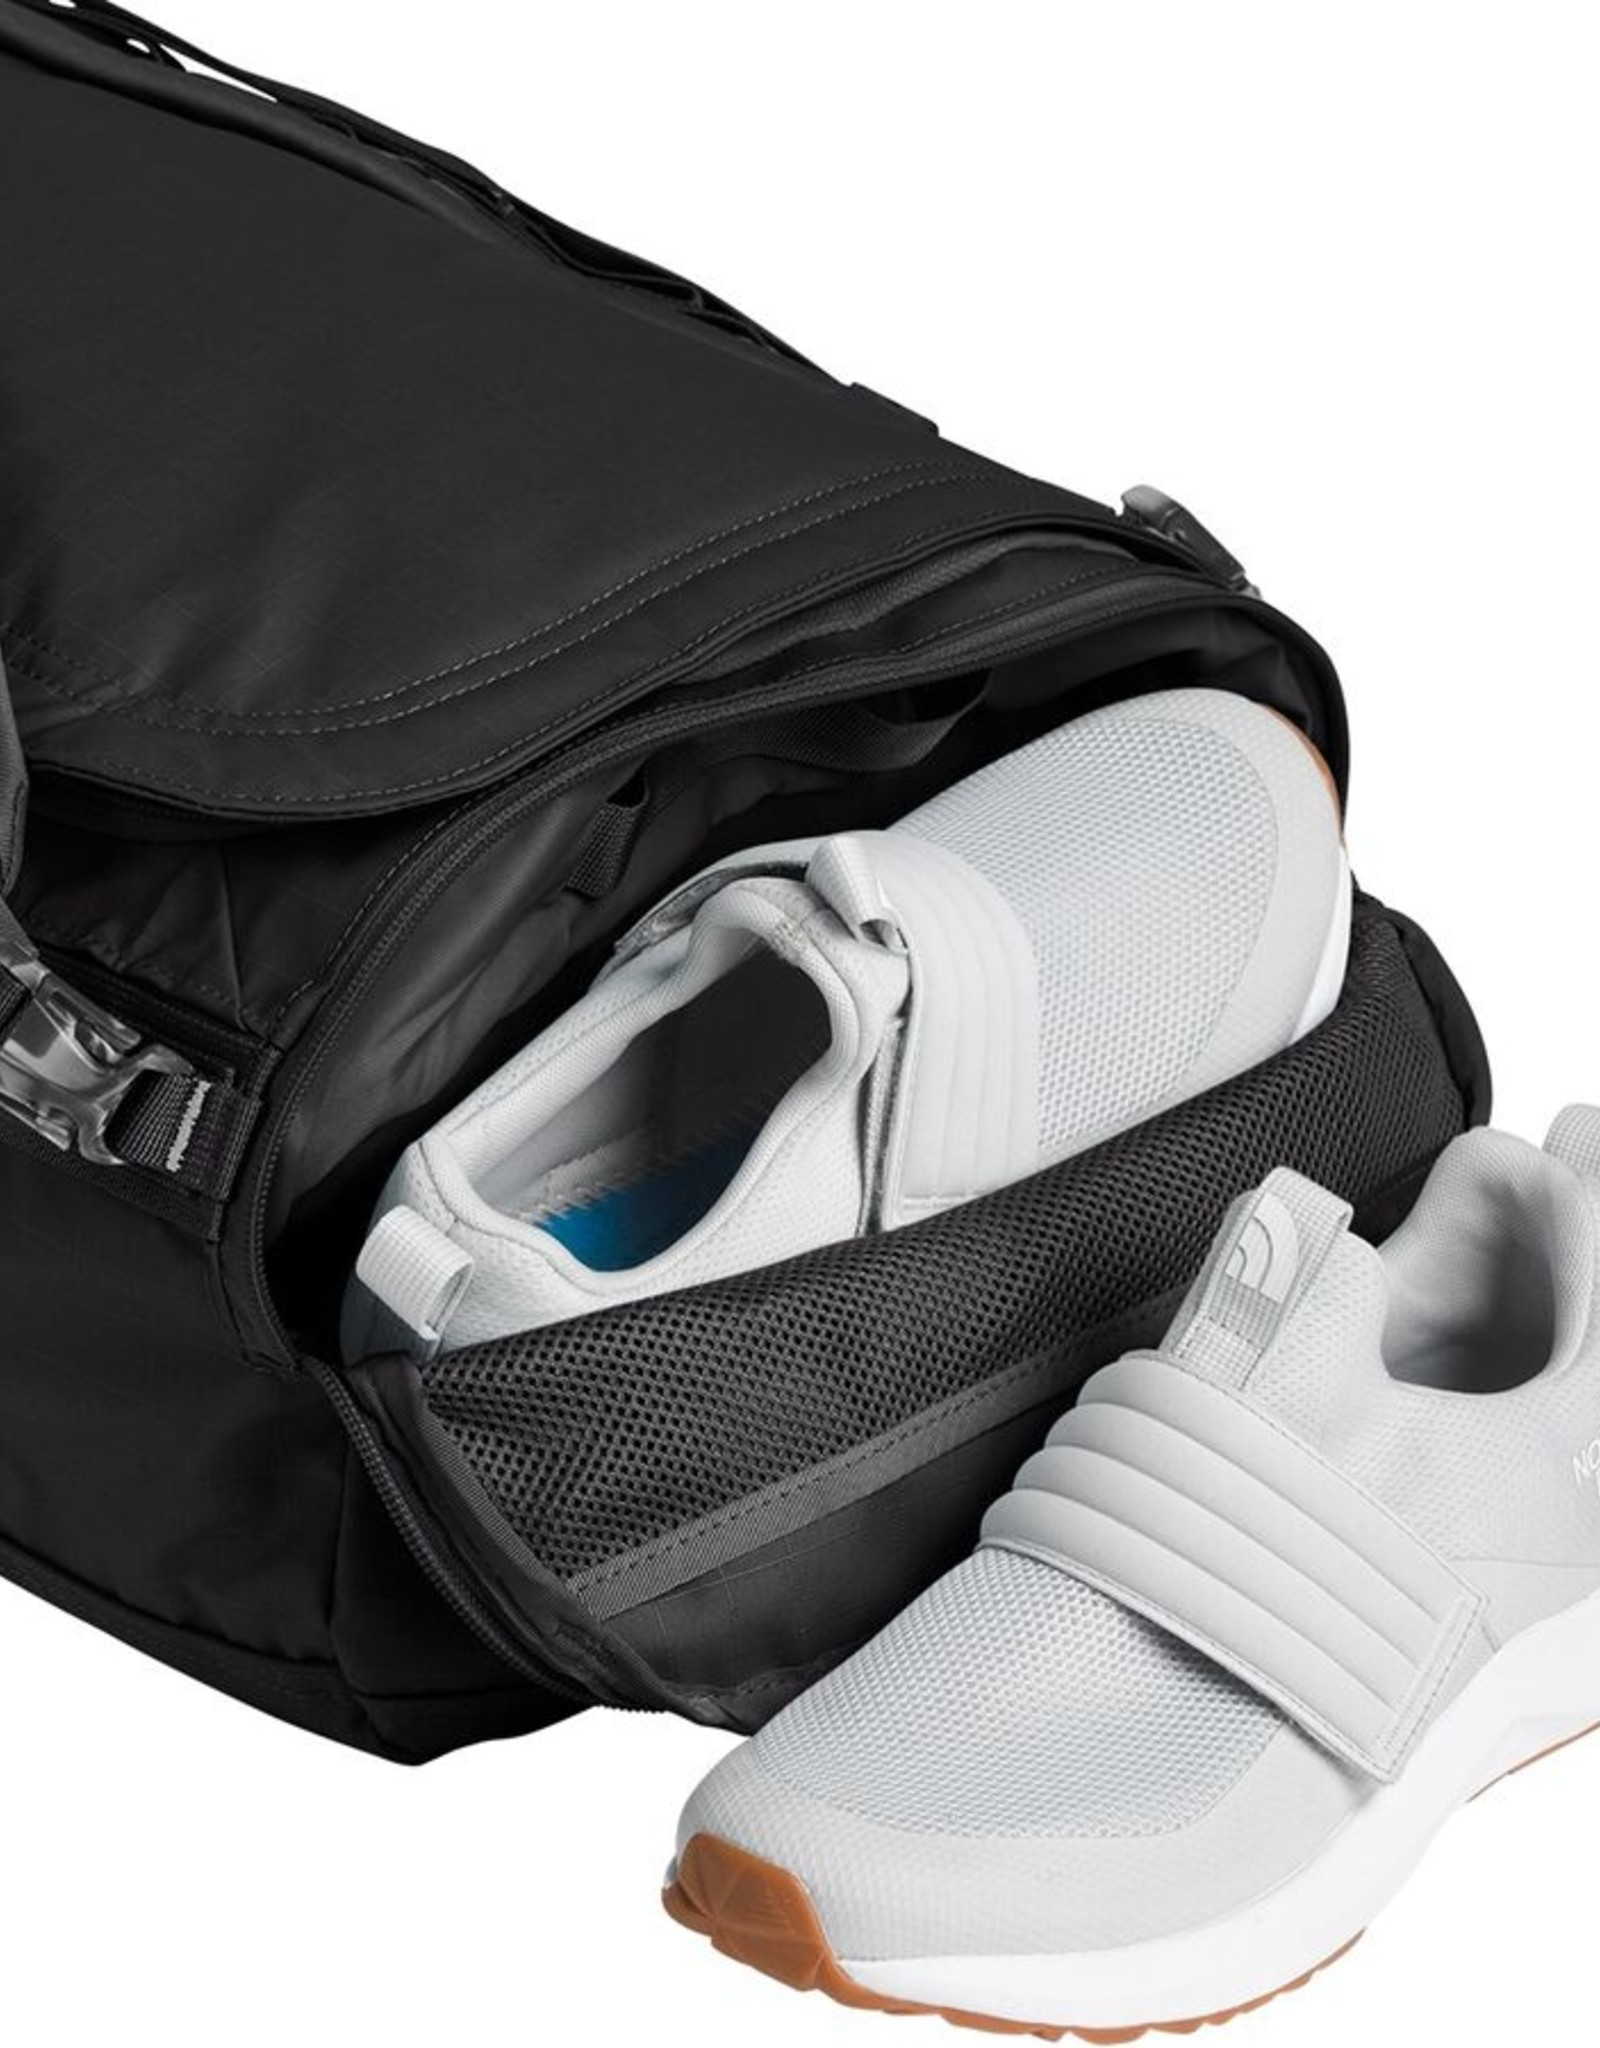 The North Face Base Camp Voyager Duffel—62L -S2021